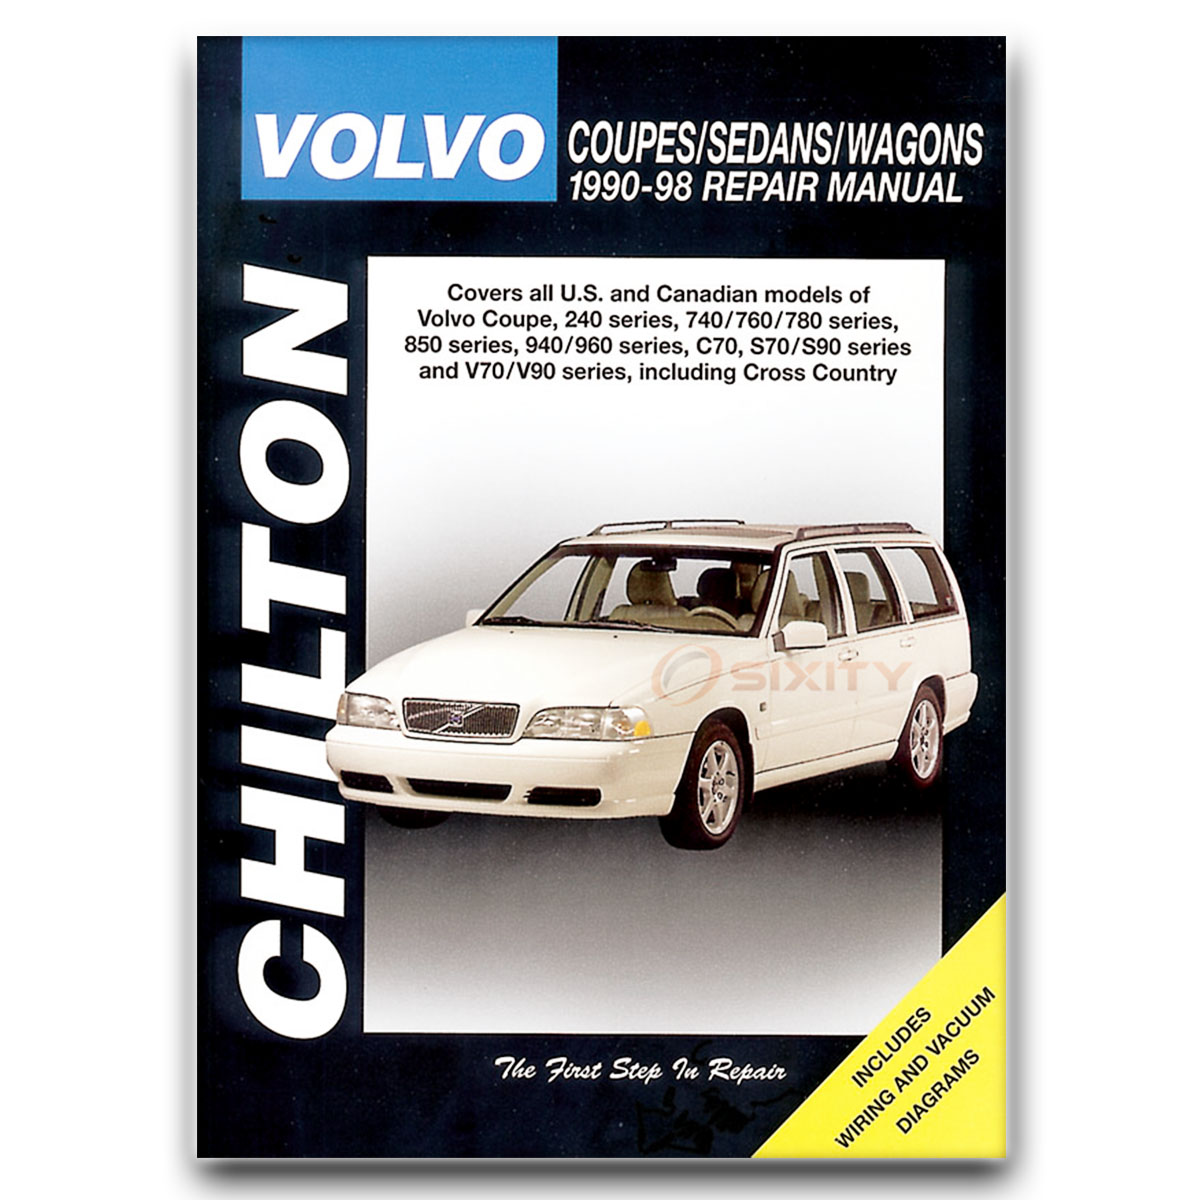 volvo 960 chilton repair manual base shop service garage book og ebay rh ebay com 1997 Volvo 960 Rear Spring 1992 volvo 960 service manual